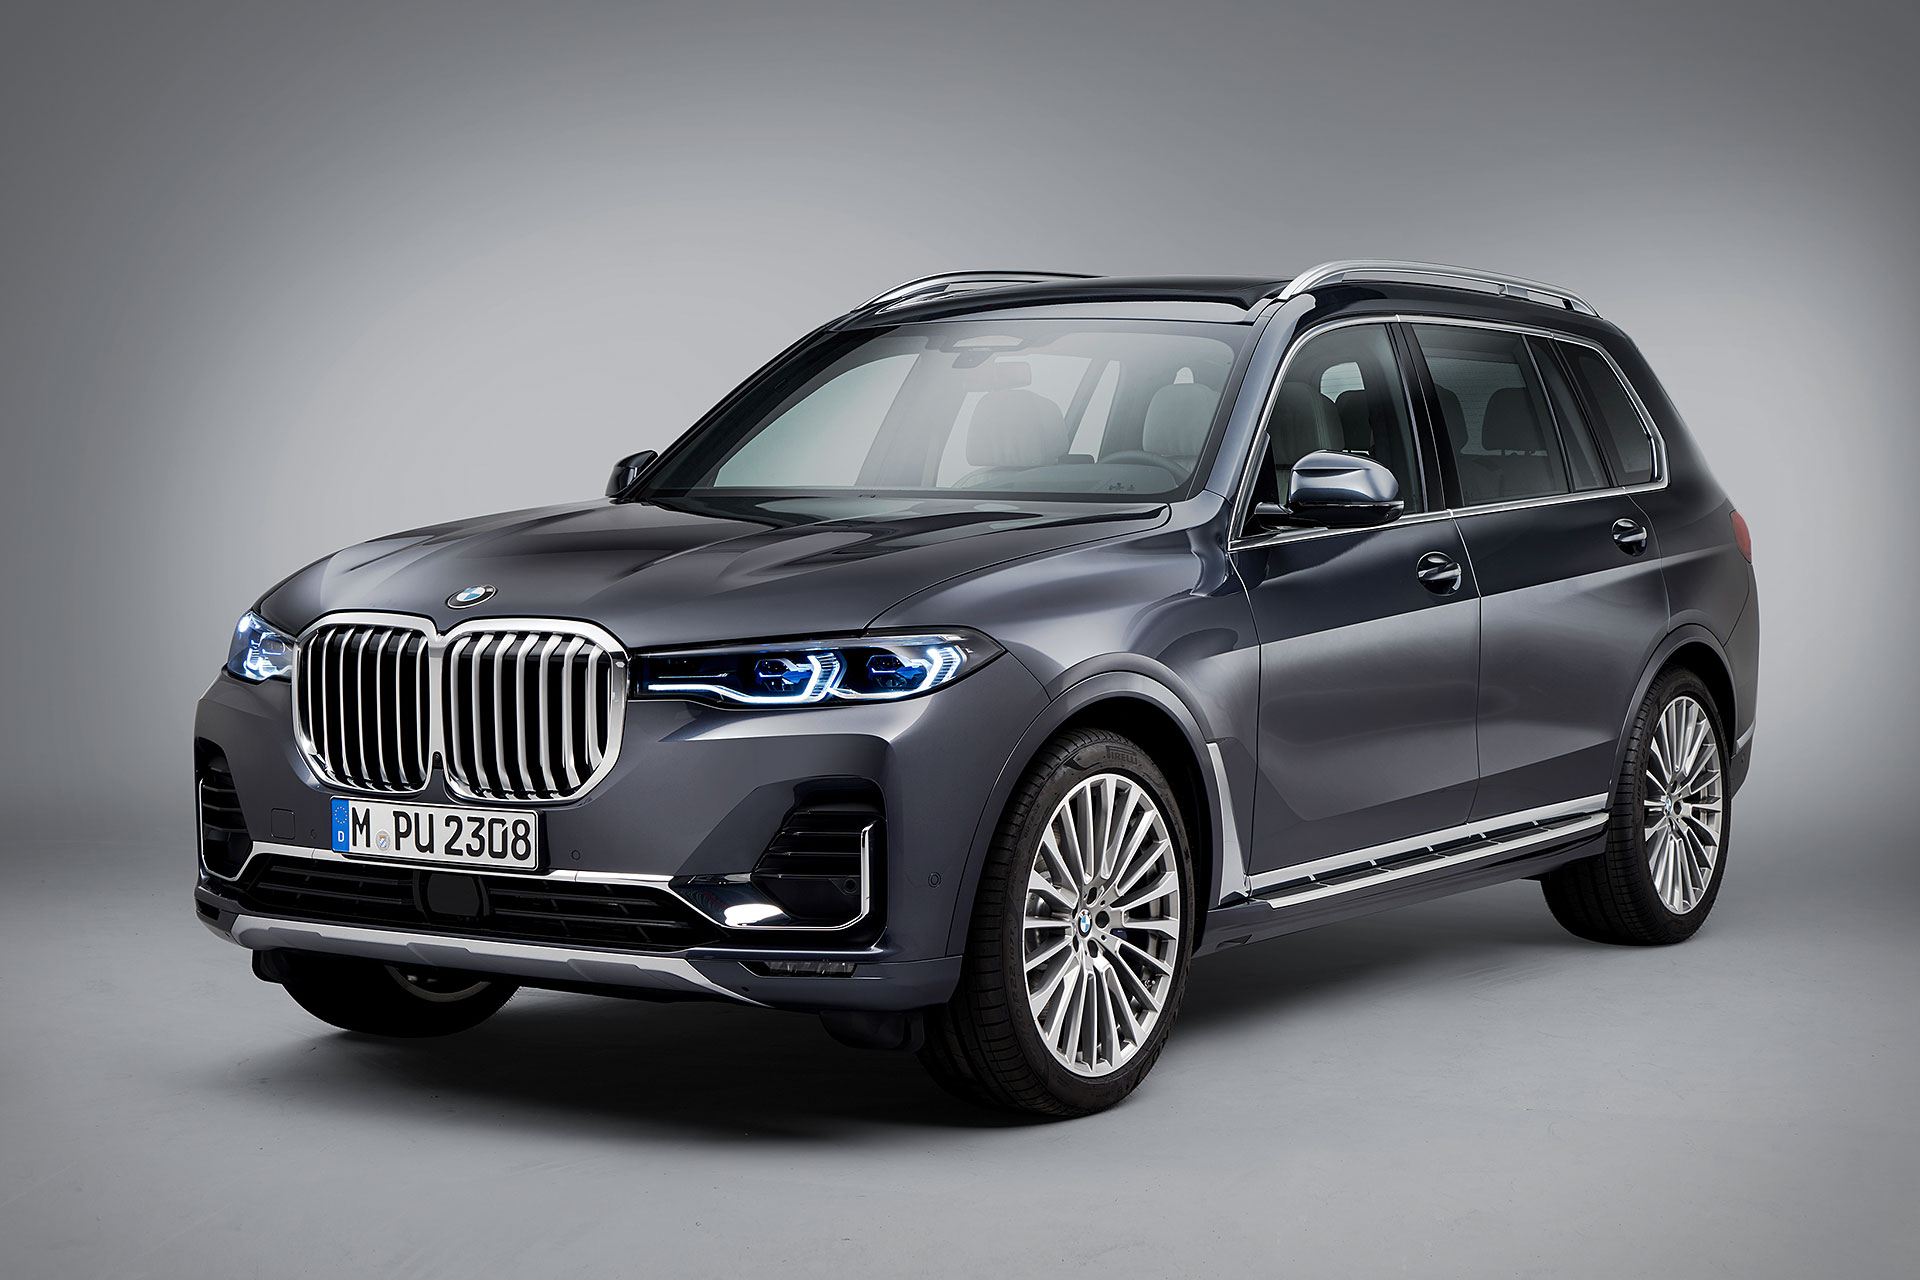 2019 Bmw X7 Suv Uncrate